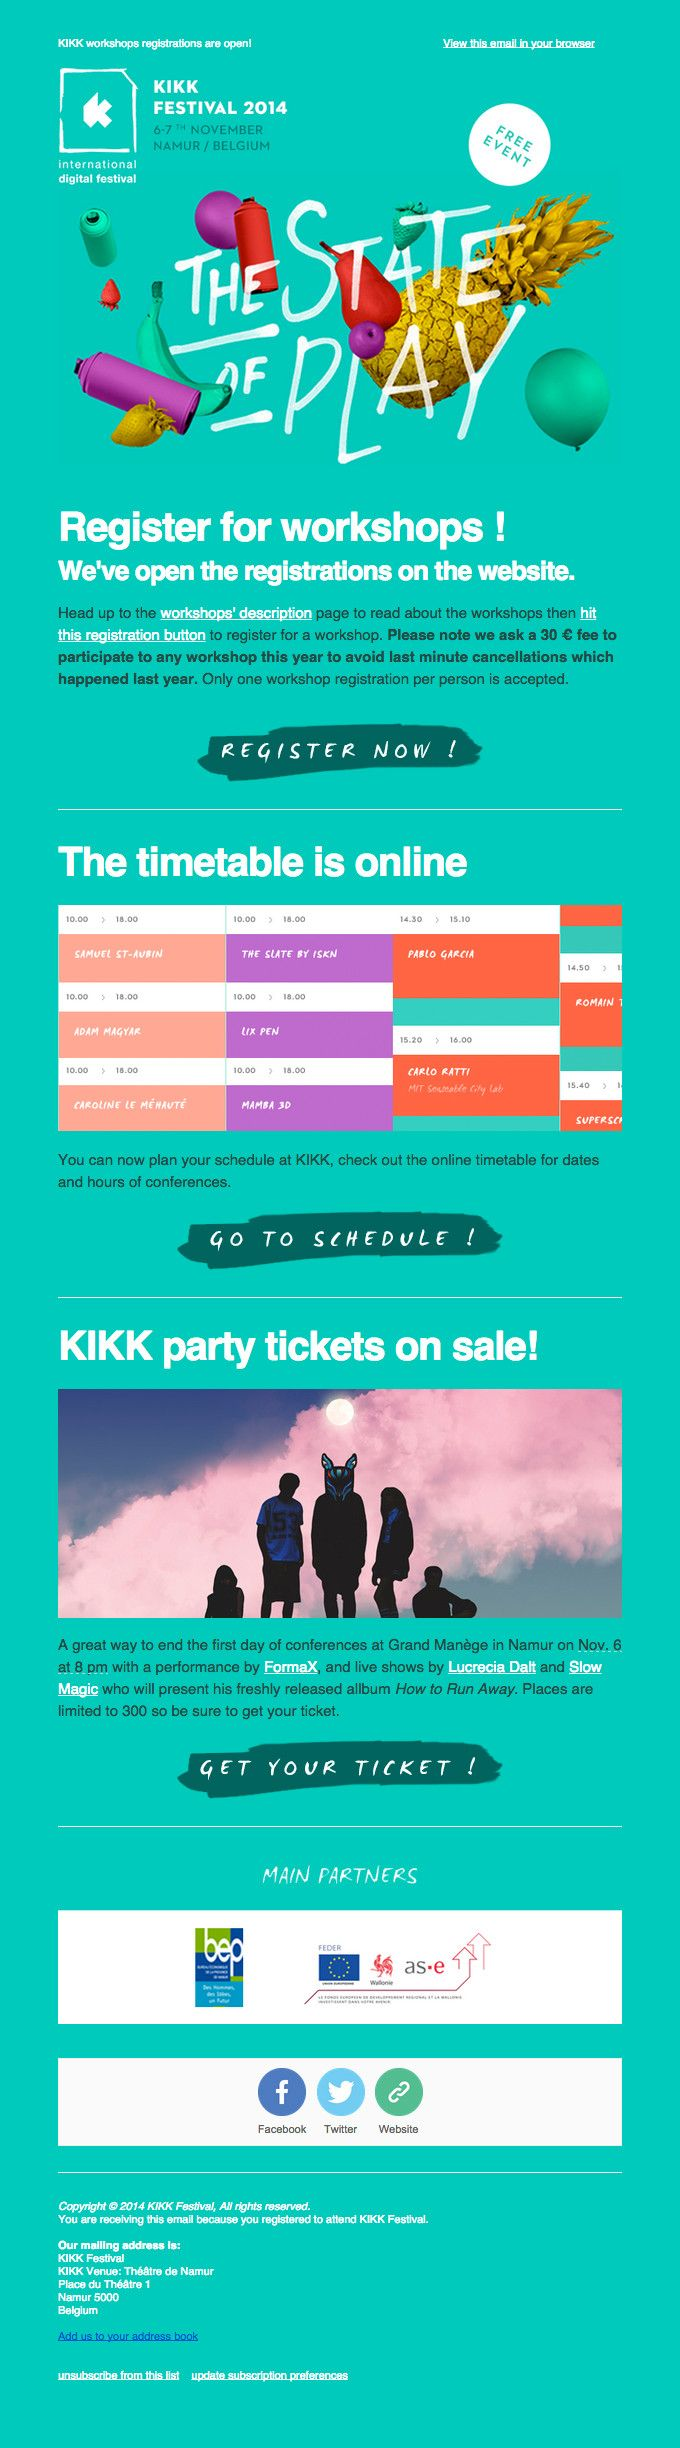 Playful Open Event Email Design From Kikk Festival   Really Good Emails